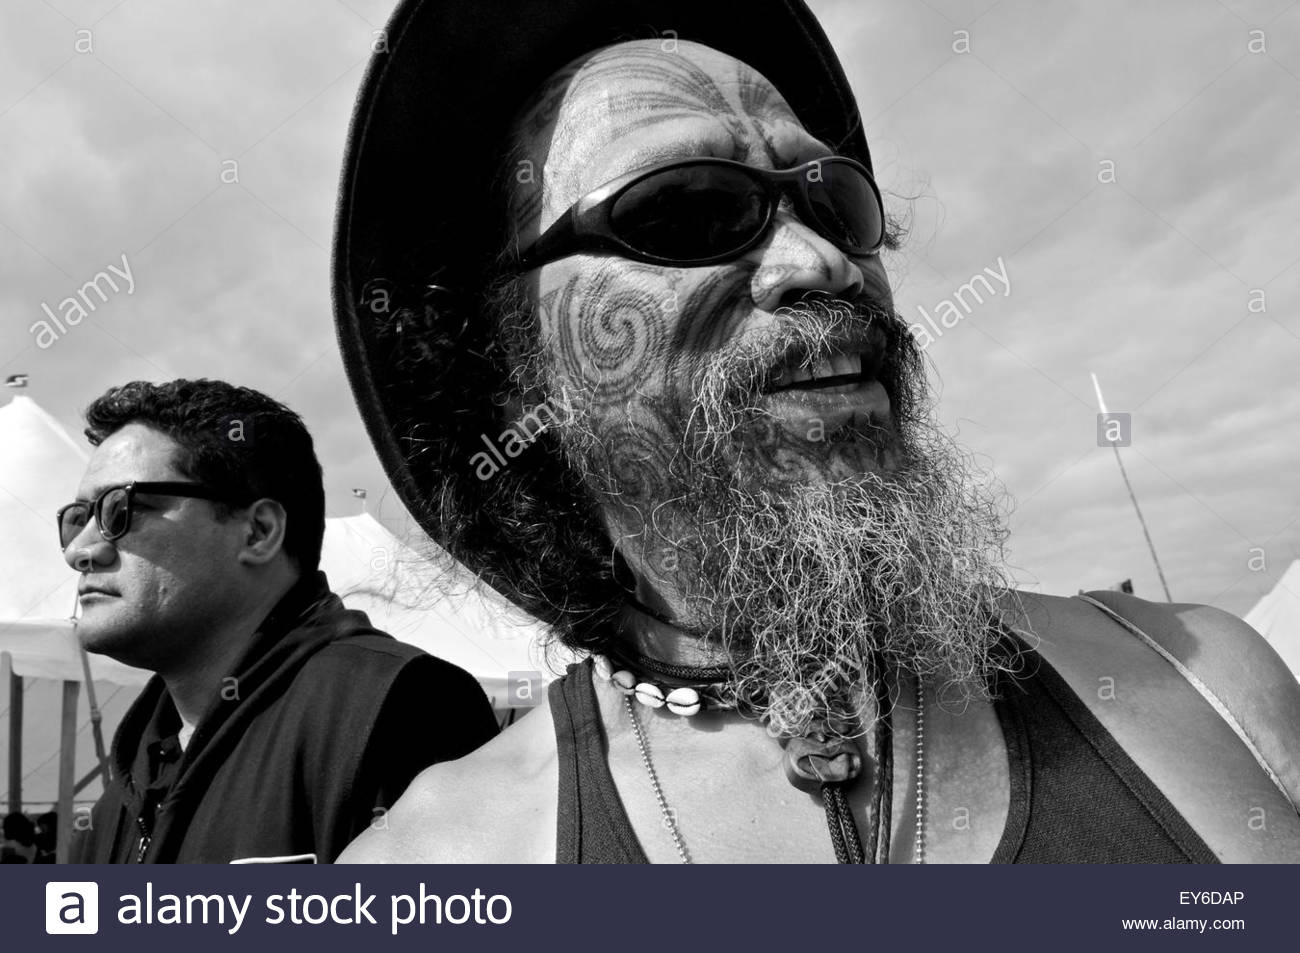 Portrait of a Maori participating in Waitangi Day annual commemorations on Waitangi Treaty Grounds, Bay of Islands, - Stock Image